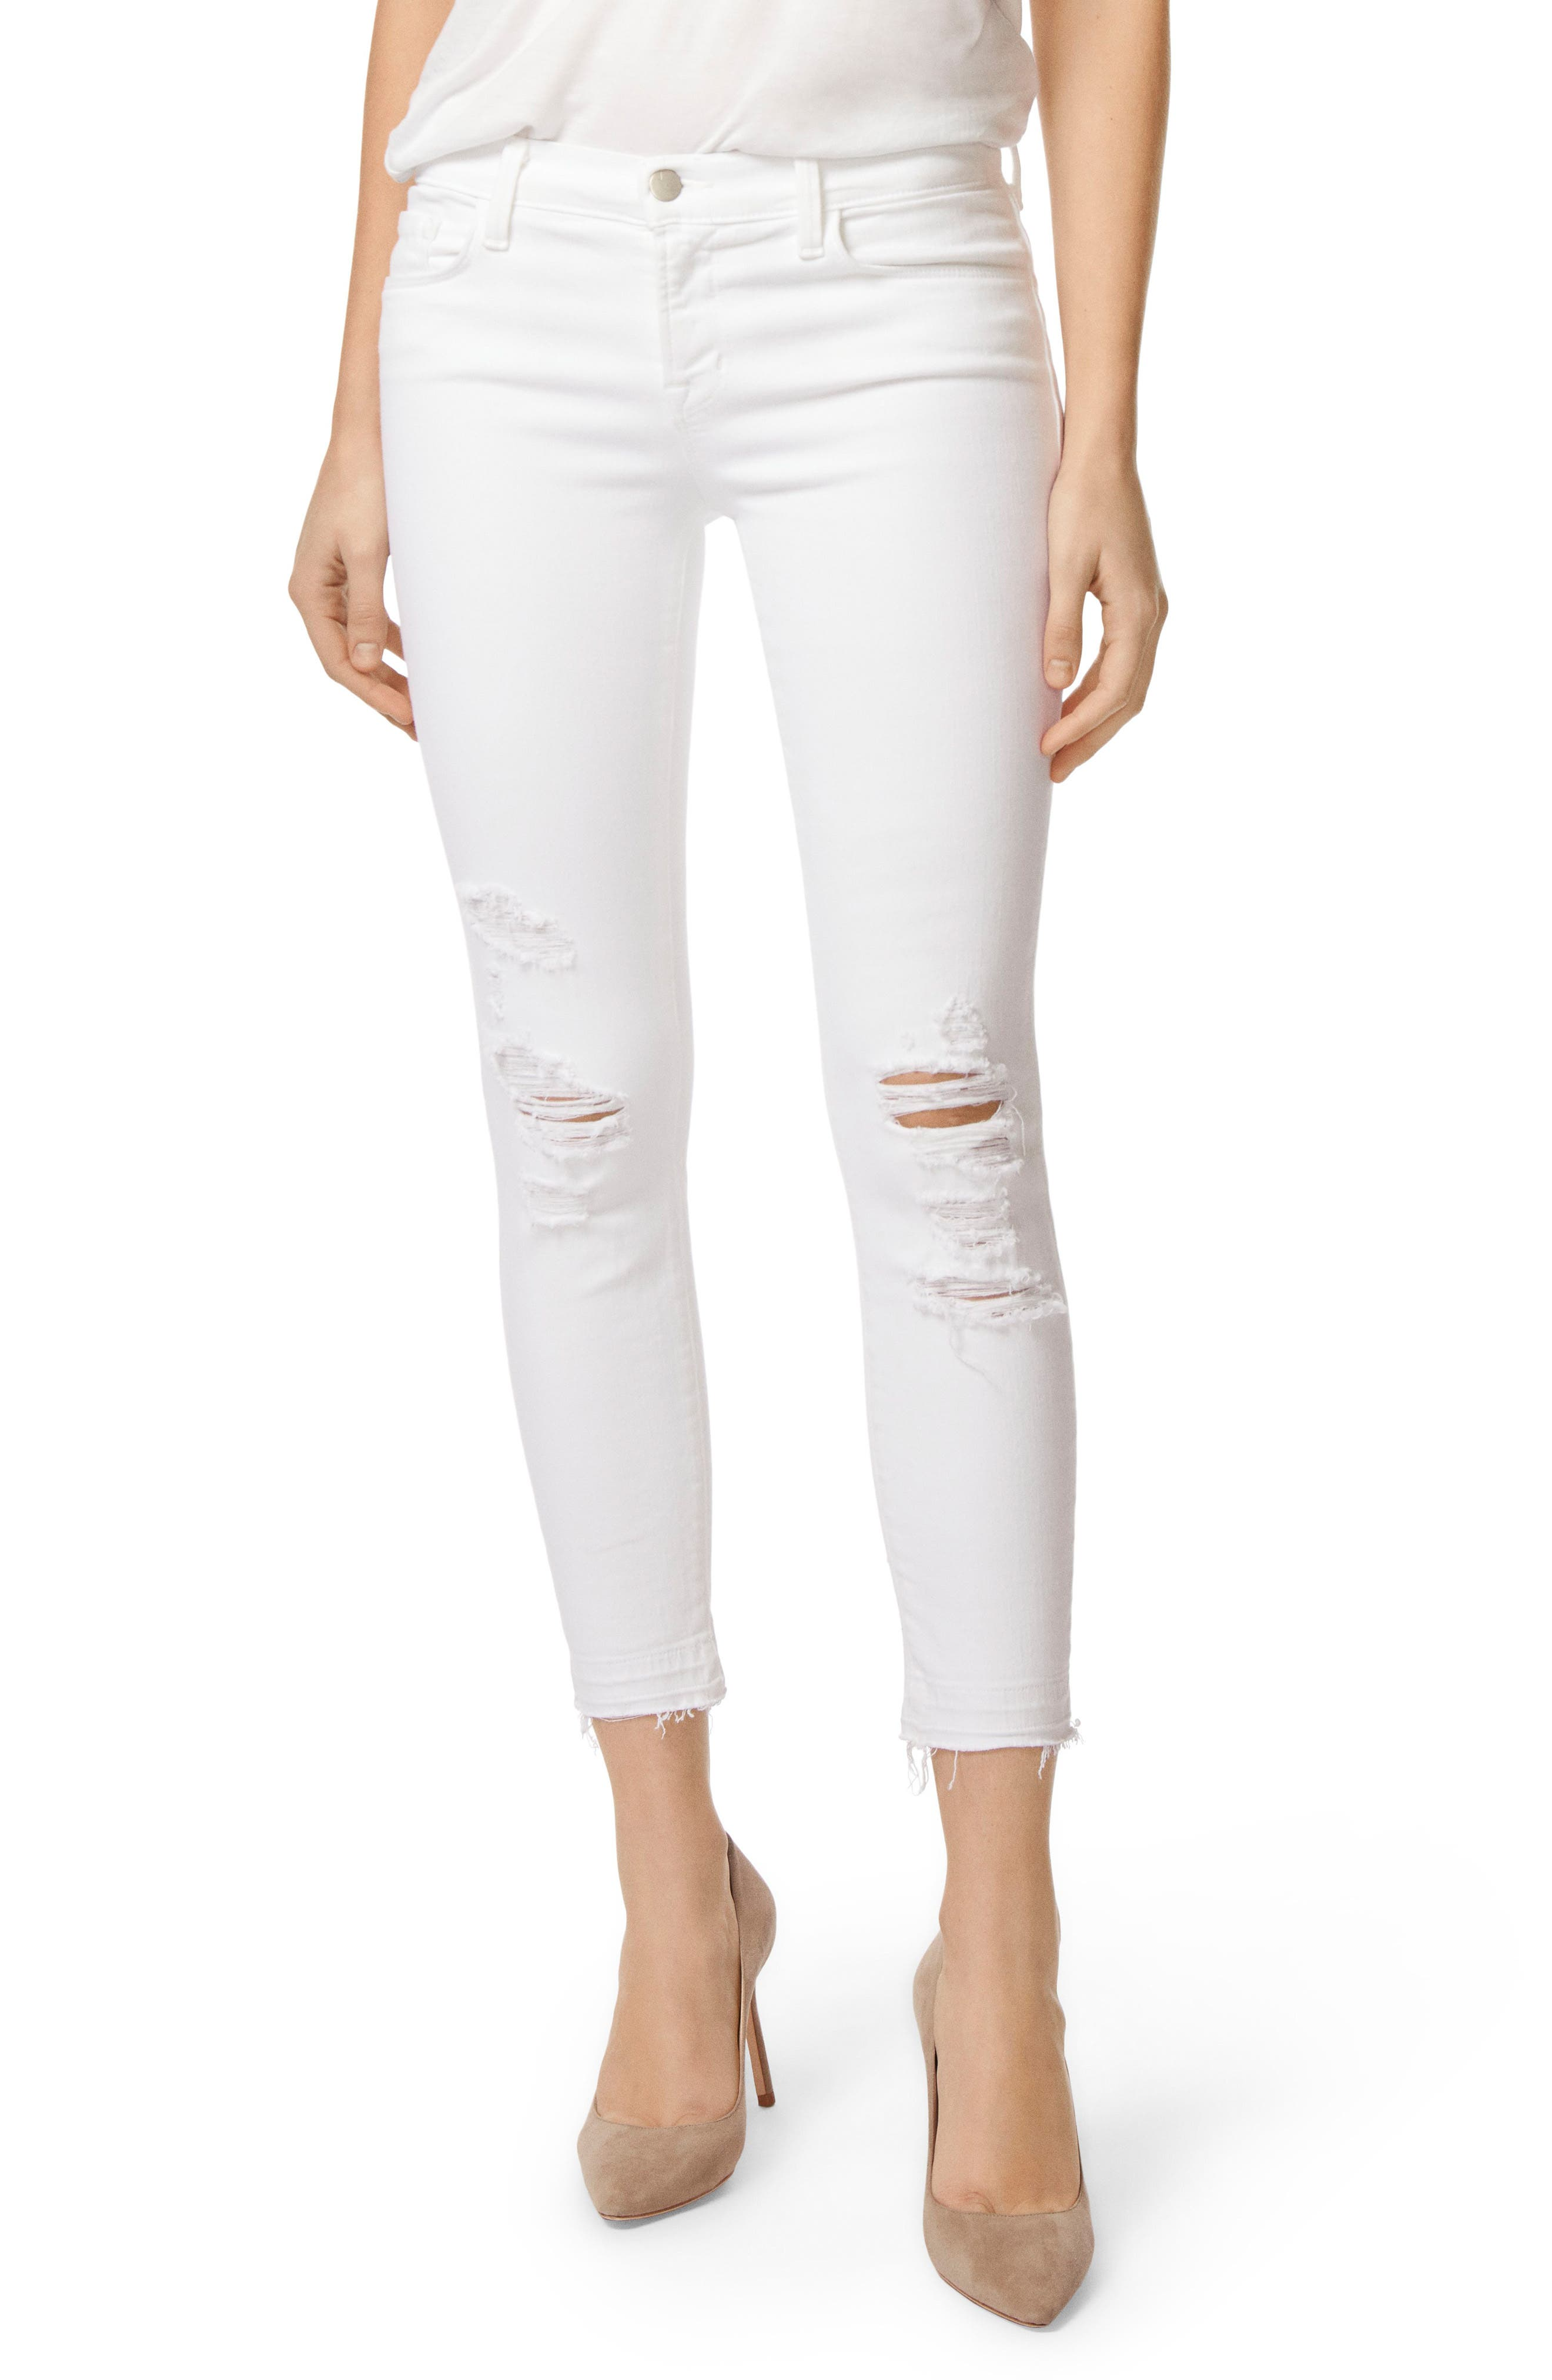 J BRAND, 9326 Low Rise Crop Skinny Jeans, Main thumbnail 1, color, DEMENTED WHITE DESTRUCTED